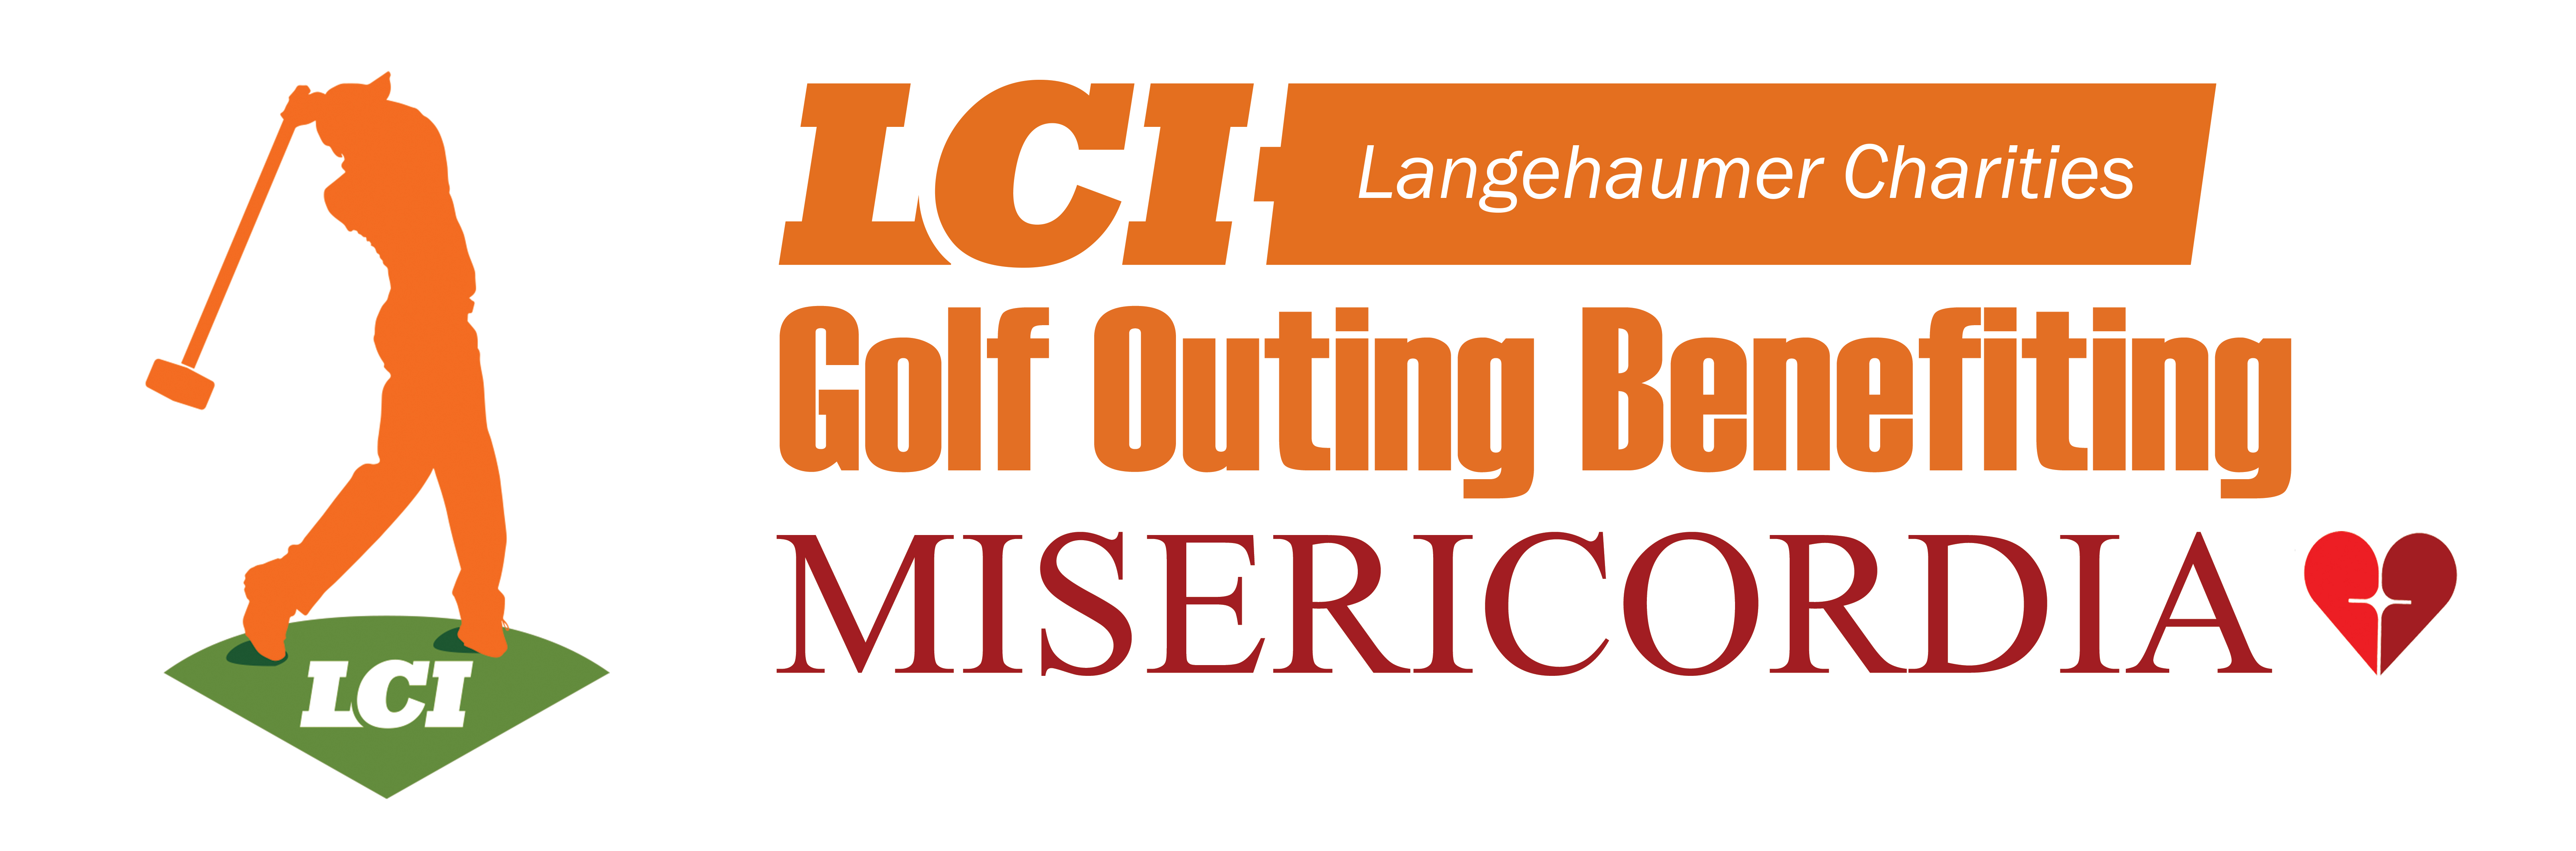 LCI Golf 2017 Linked